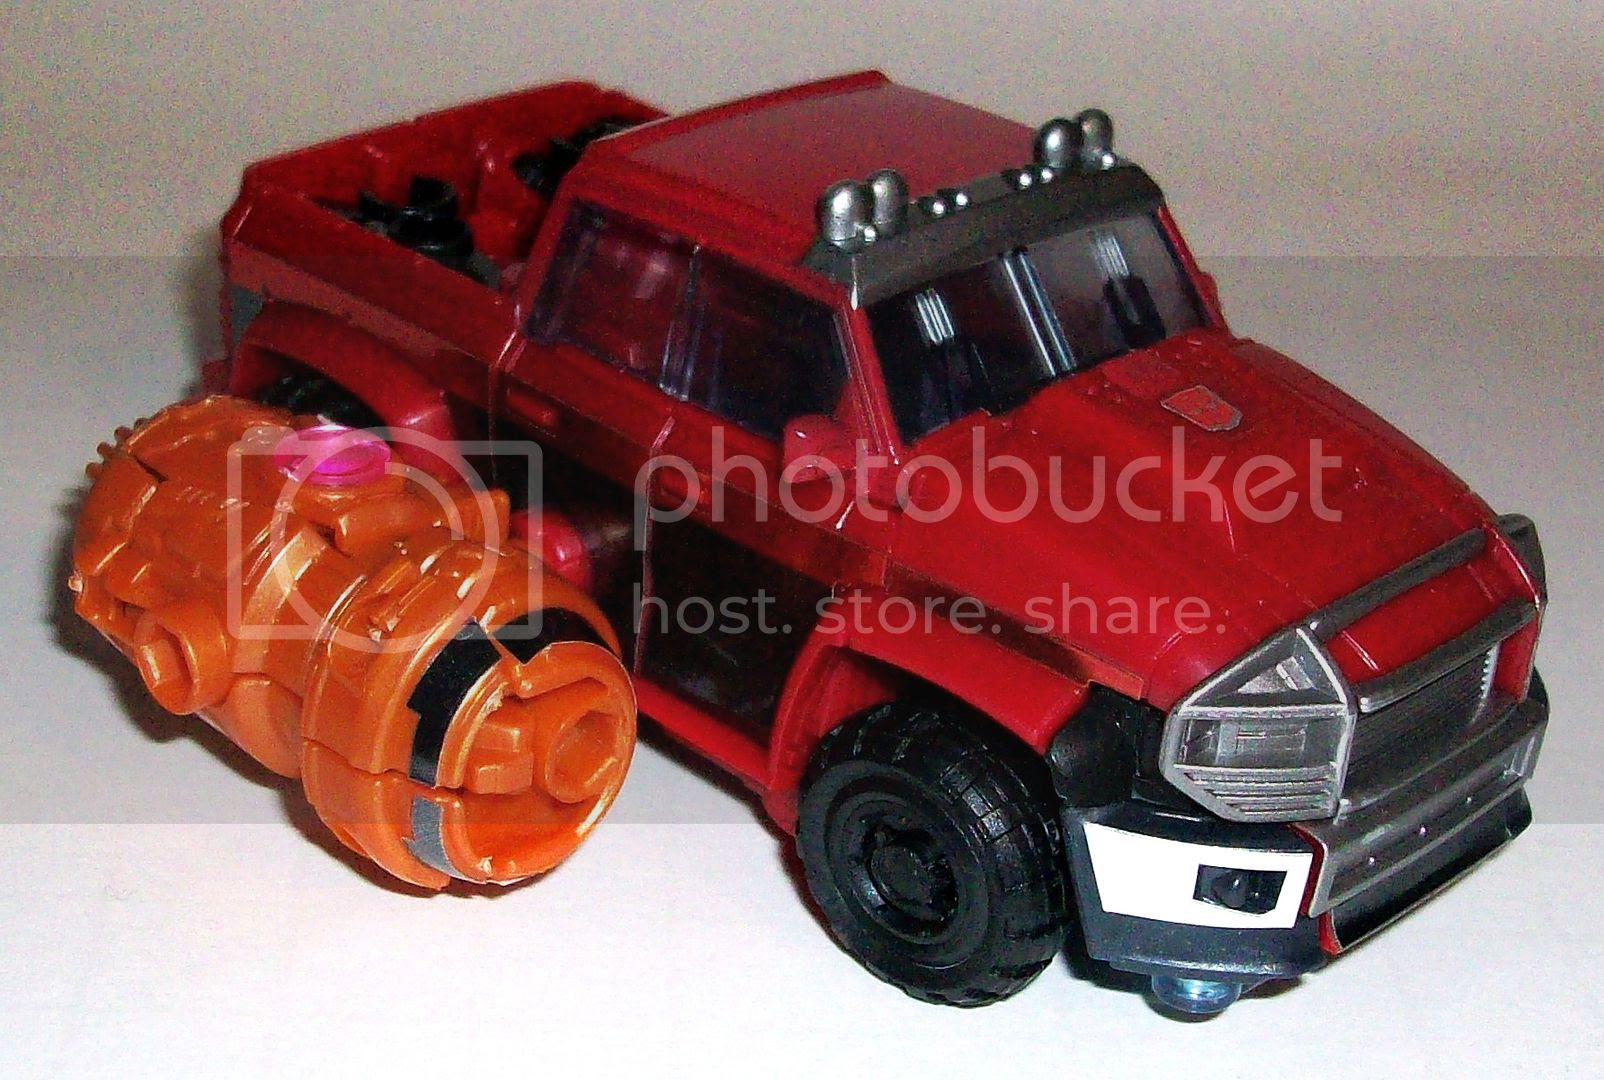 Ironhide AM-20 photo 197_zps86c6d1a3.jpg